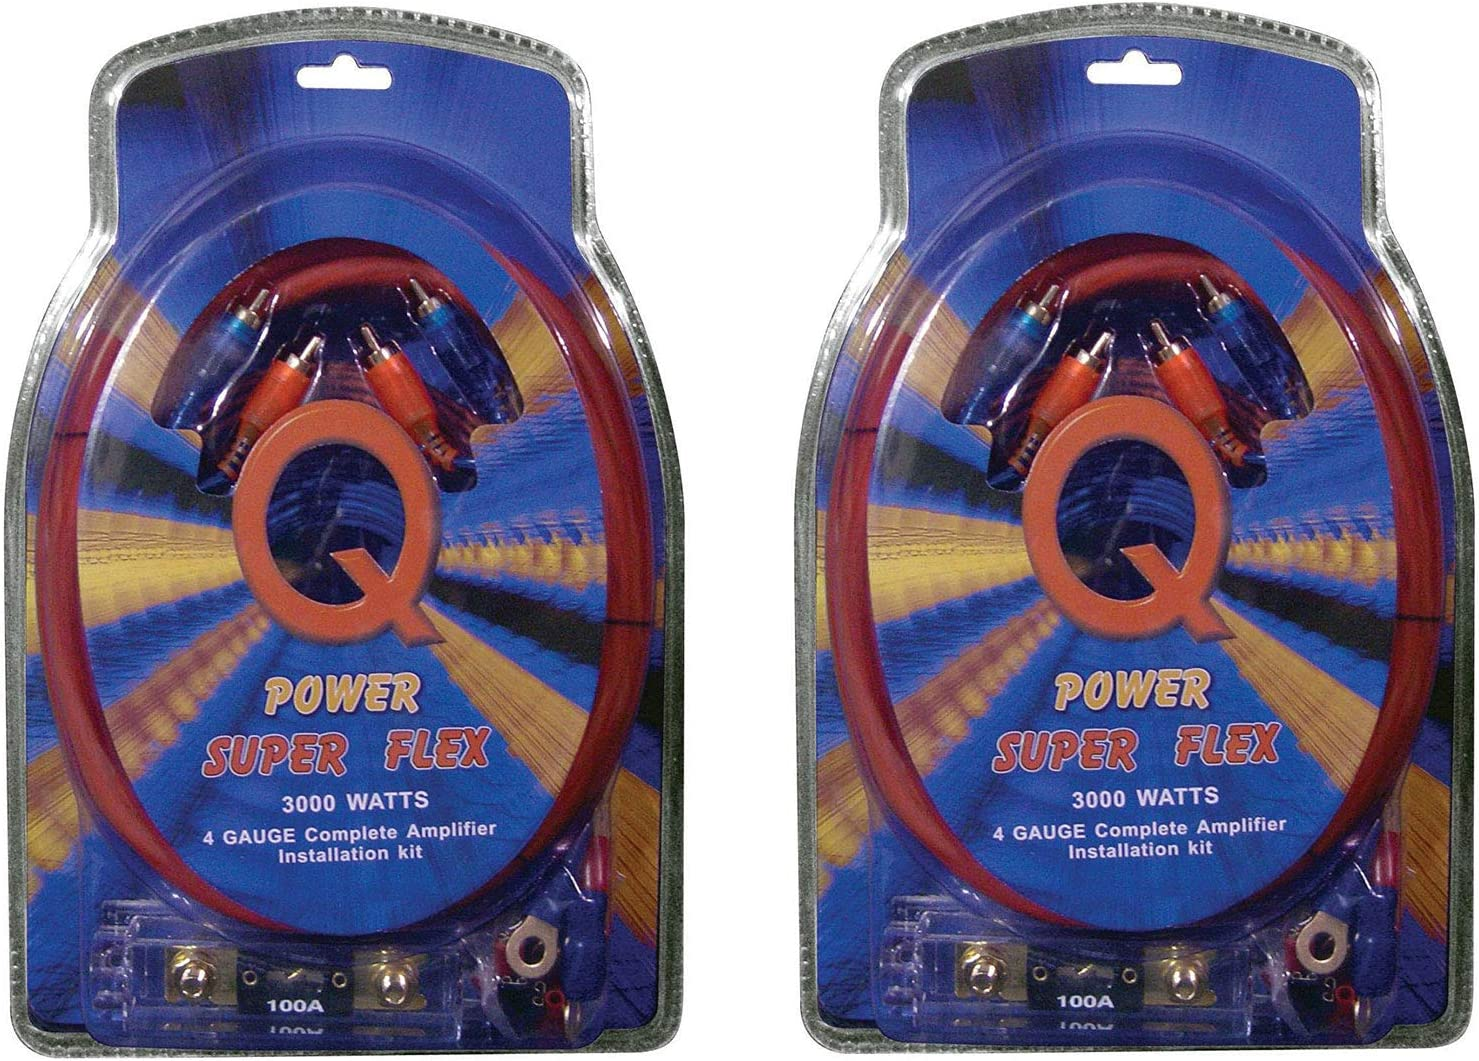 Perfect for Car//Truck//Motorcycle//Rv//ATV Complete 3000W Gravity 4 Gauge Amplifier Installation Wiring Kit Amp Pk2 4 Ga Blue for Installer and DIY Hobbyist